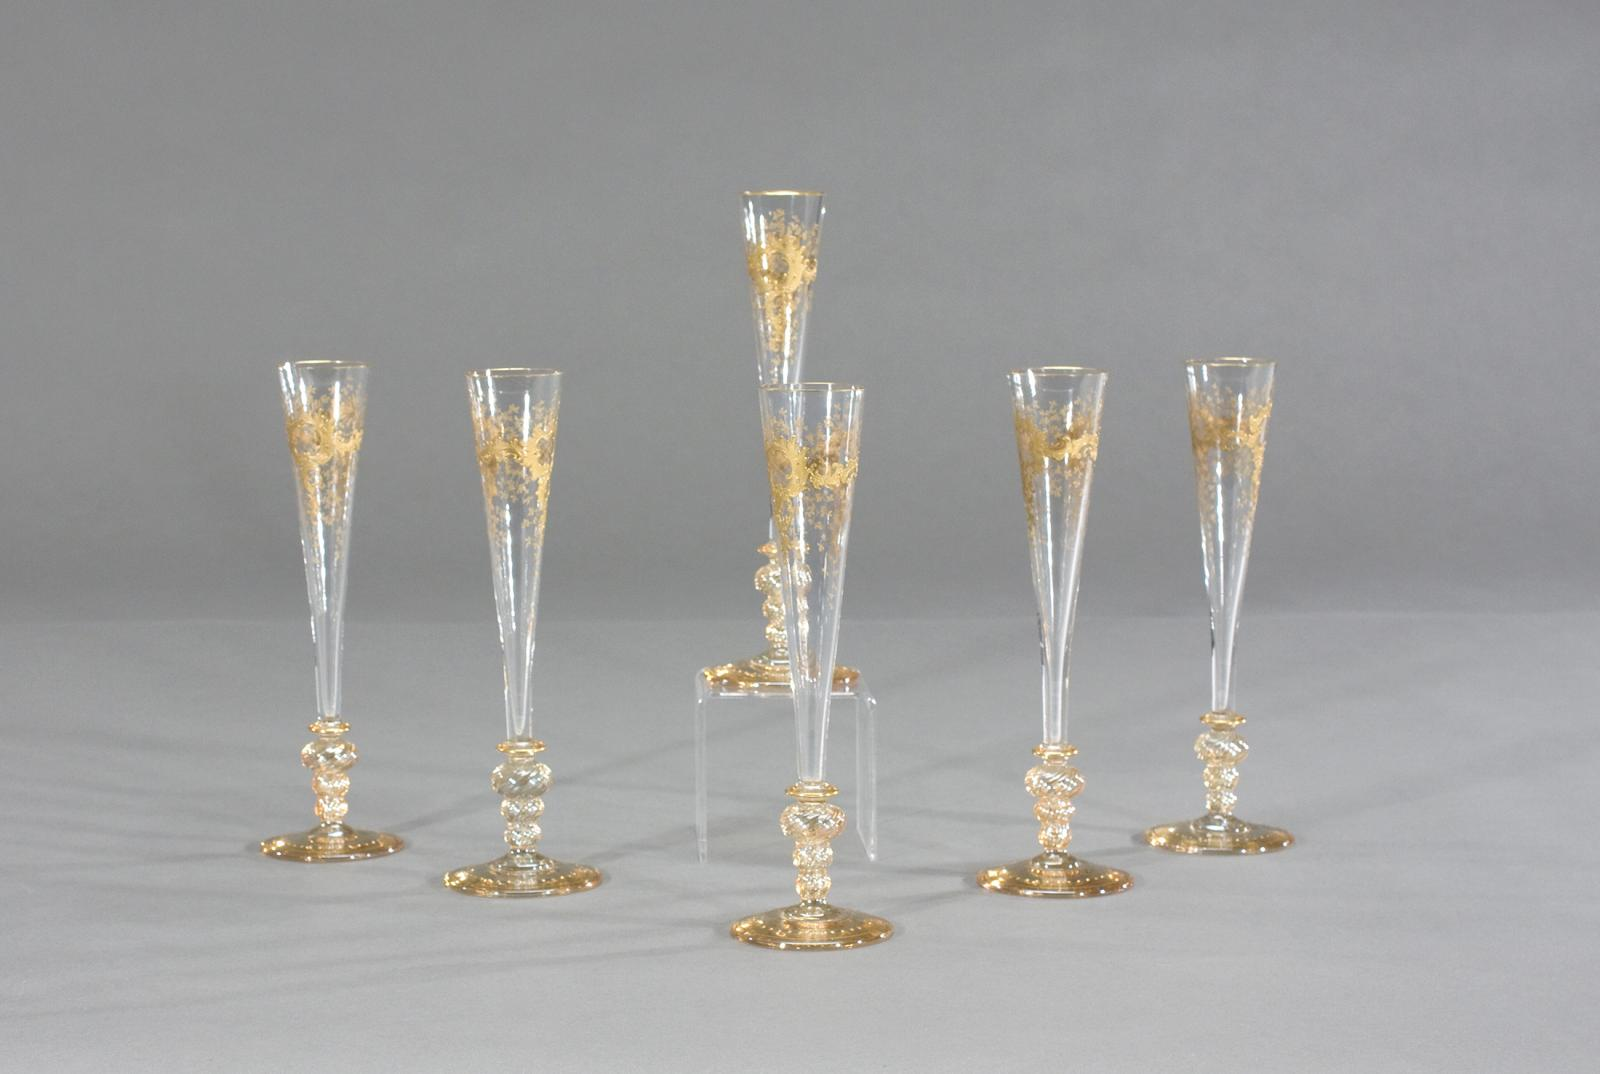 set of 6 venetian champagne flutes with raised gold goblets